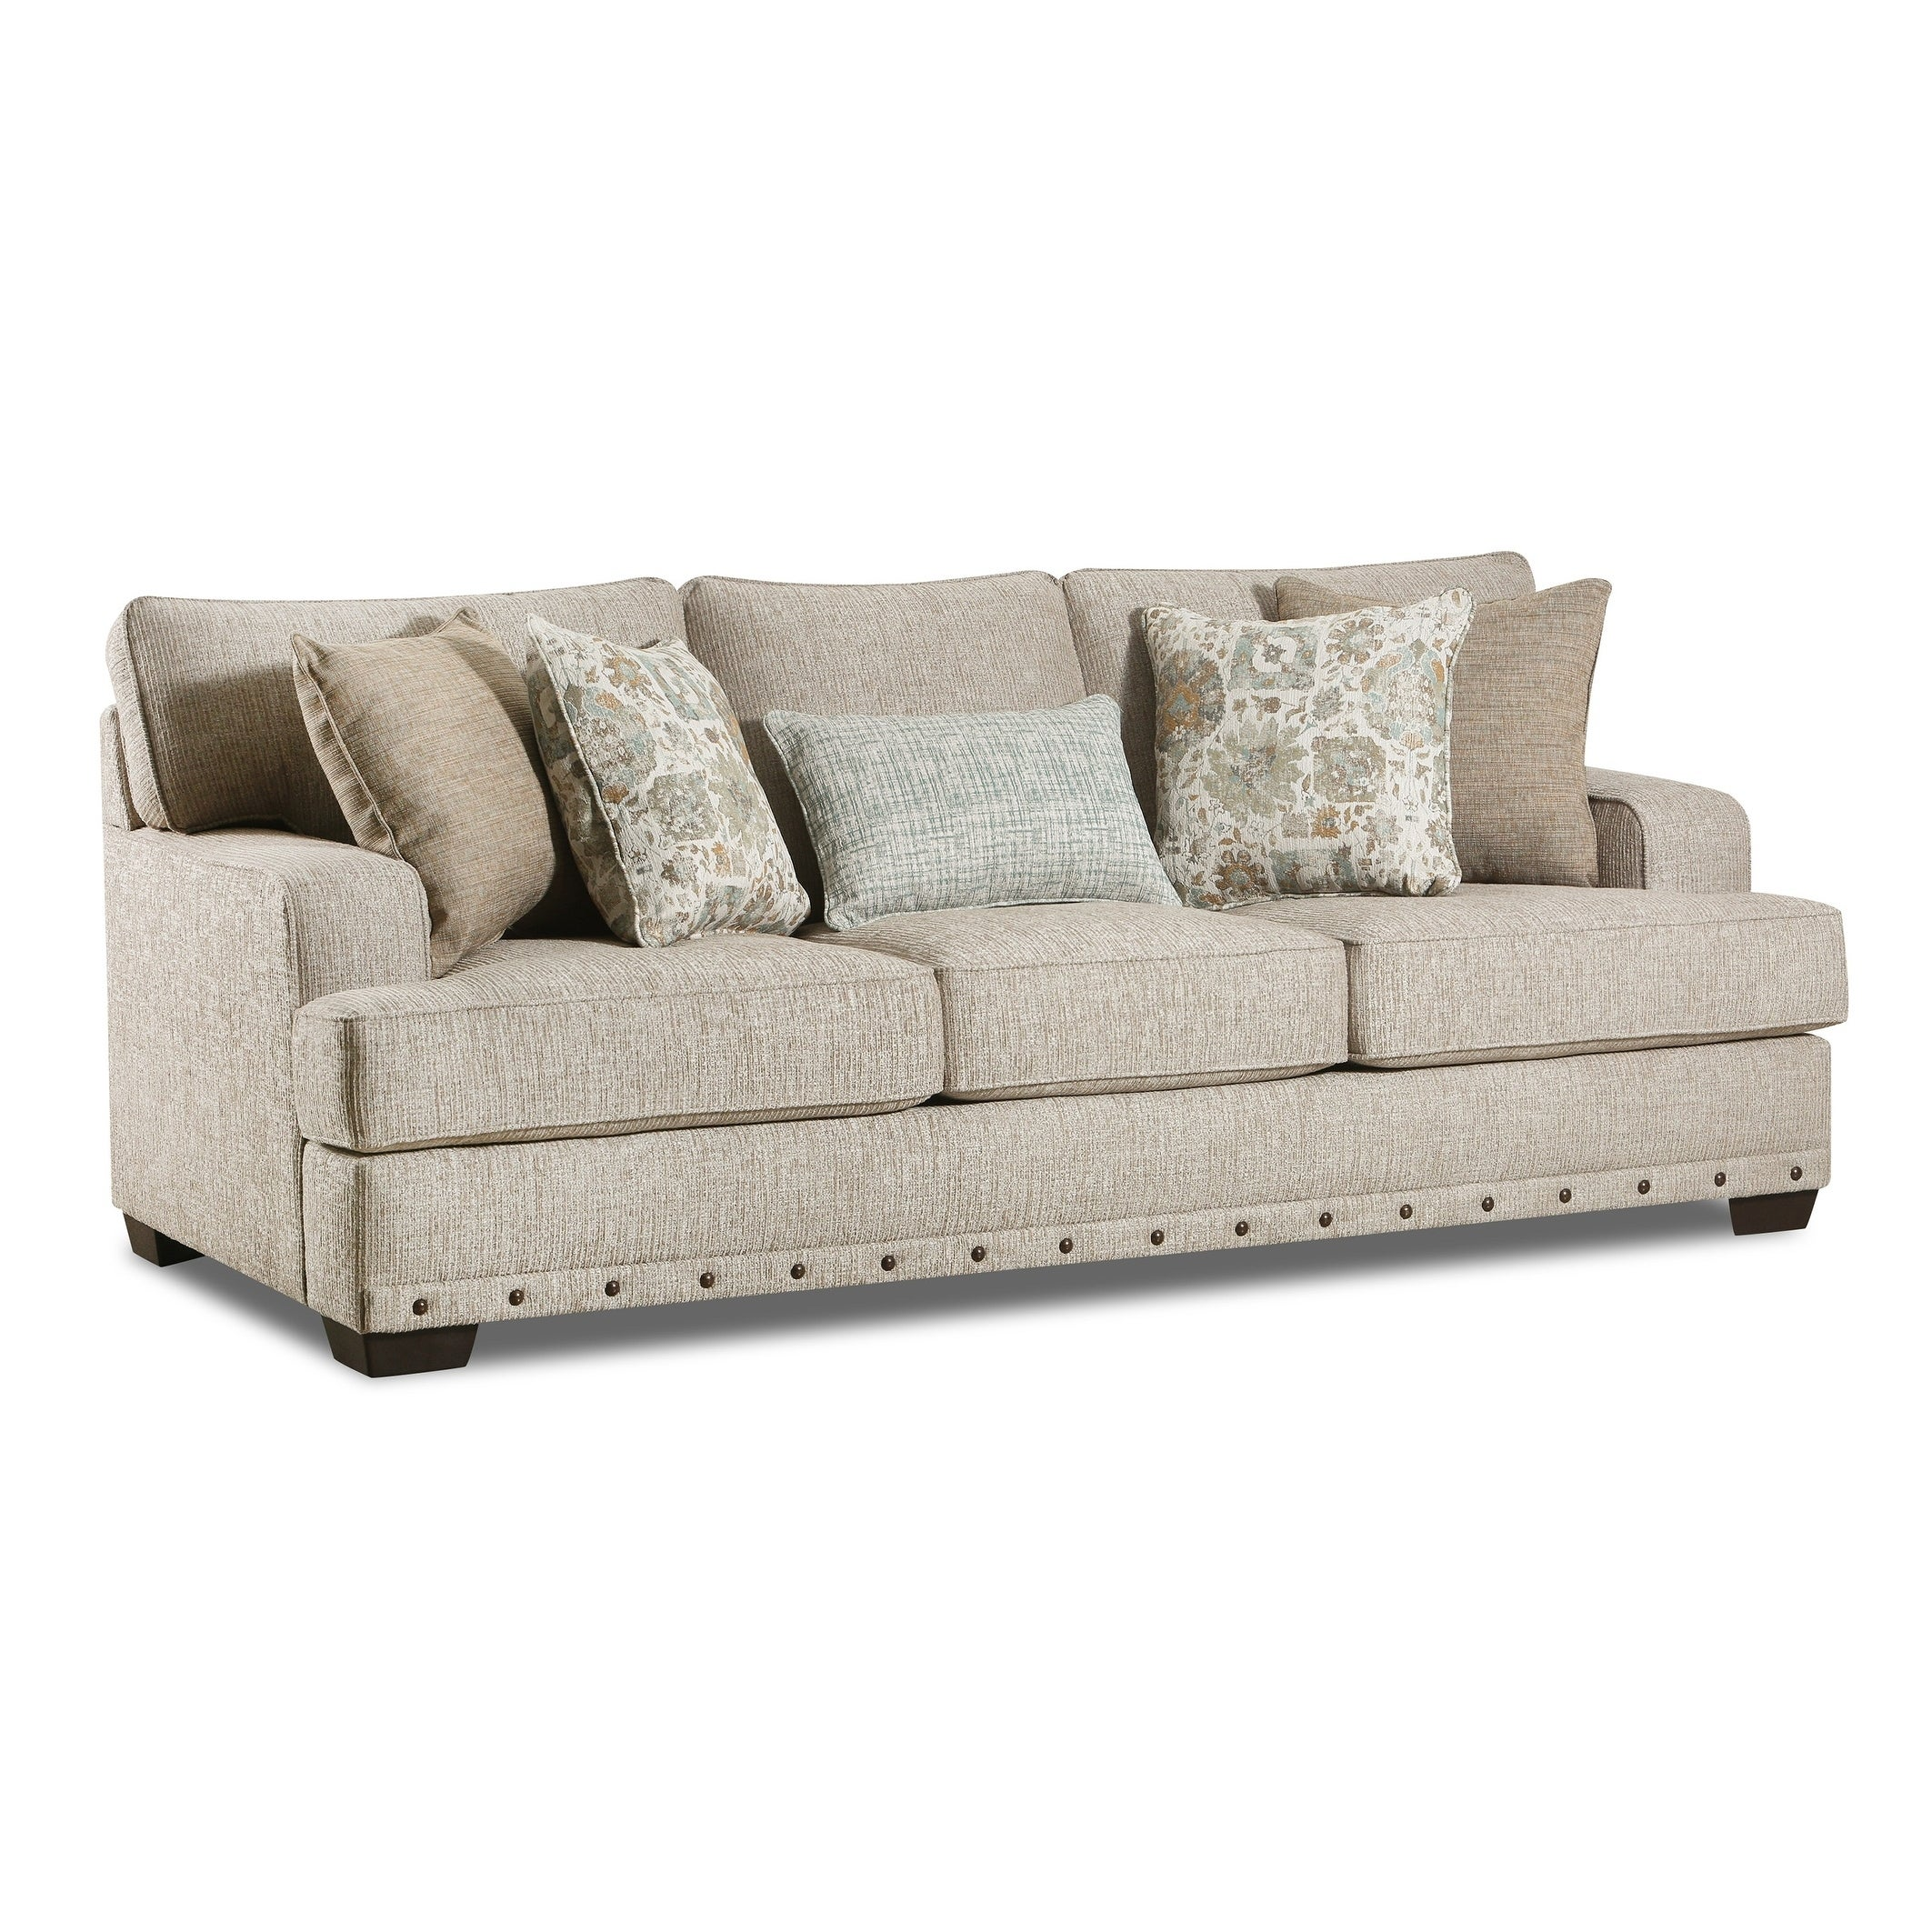 - Shop Ammon Fabric Queen Sofa Sleeper With Toss Pillows - On Sale